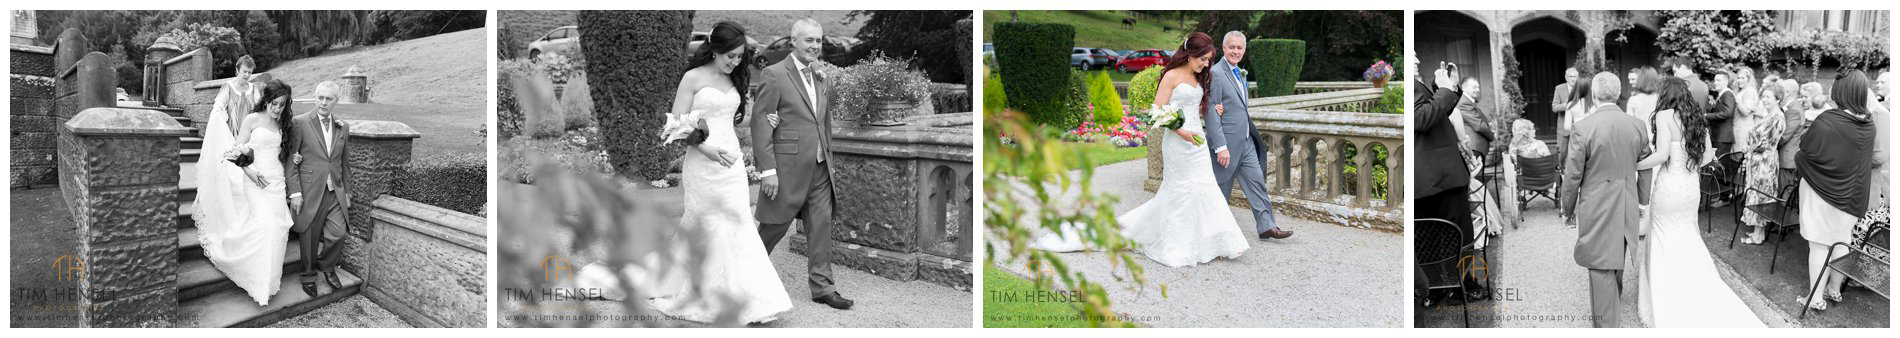 Wedding photography in Buxton, Derbyshire